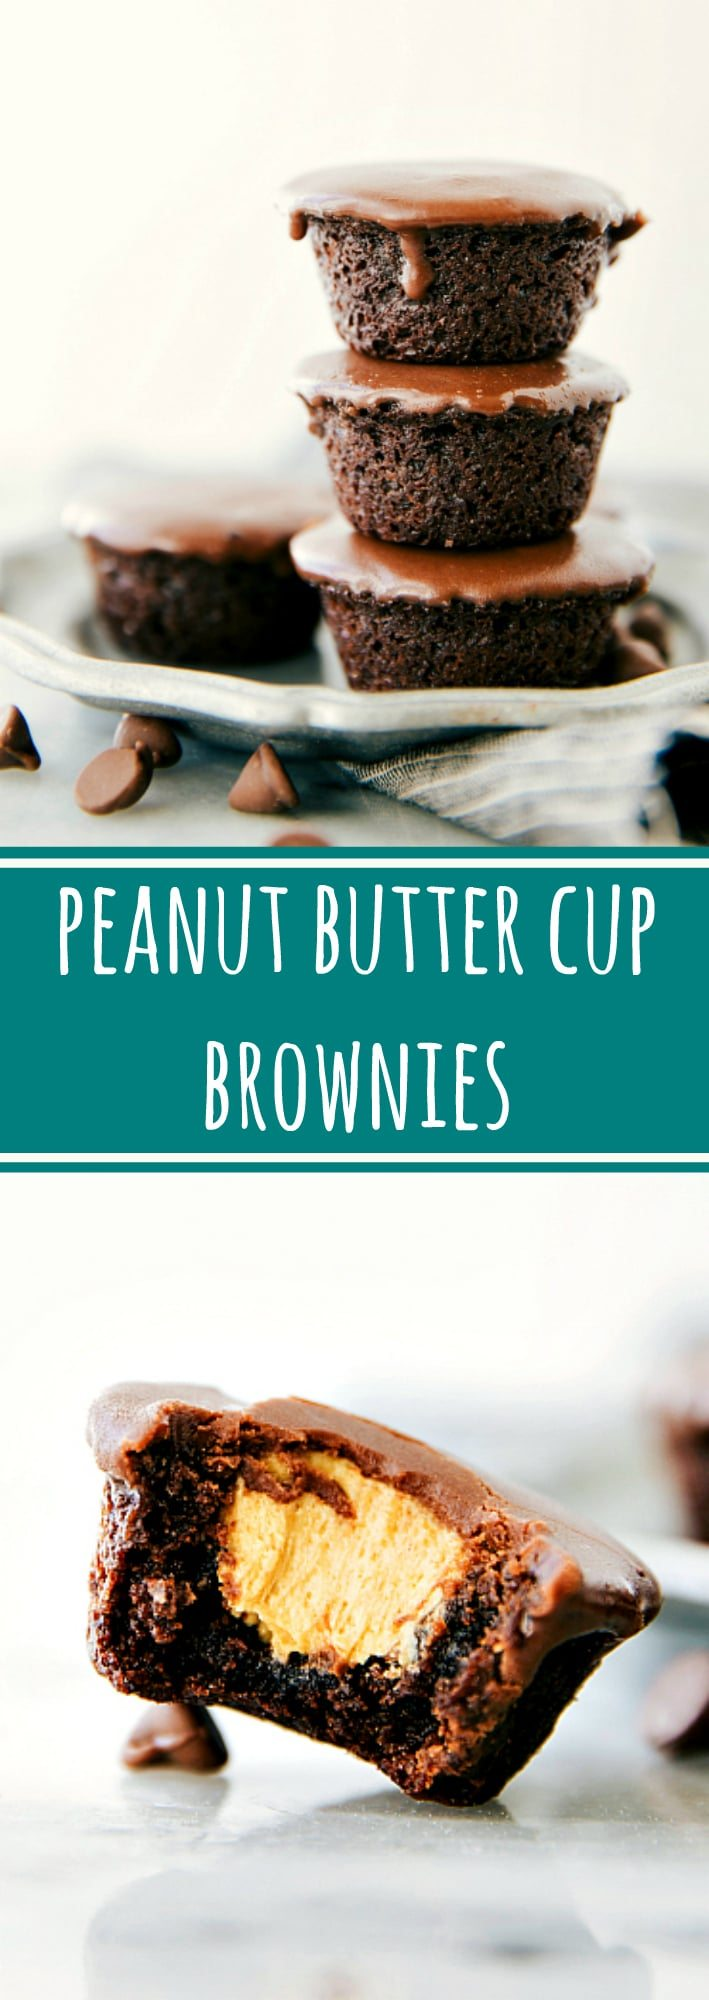 Blue apron brownies - Easy Miniature Peanut Butter Cup Brownie Bites Creamy Peanut Butter Filling In A Chocolate Fudge